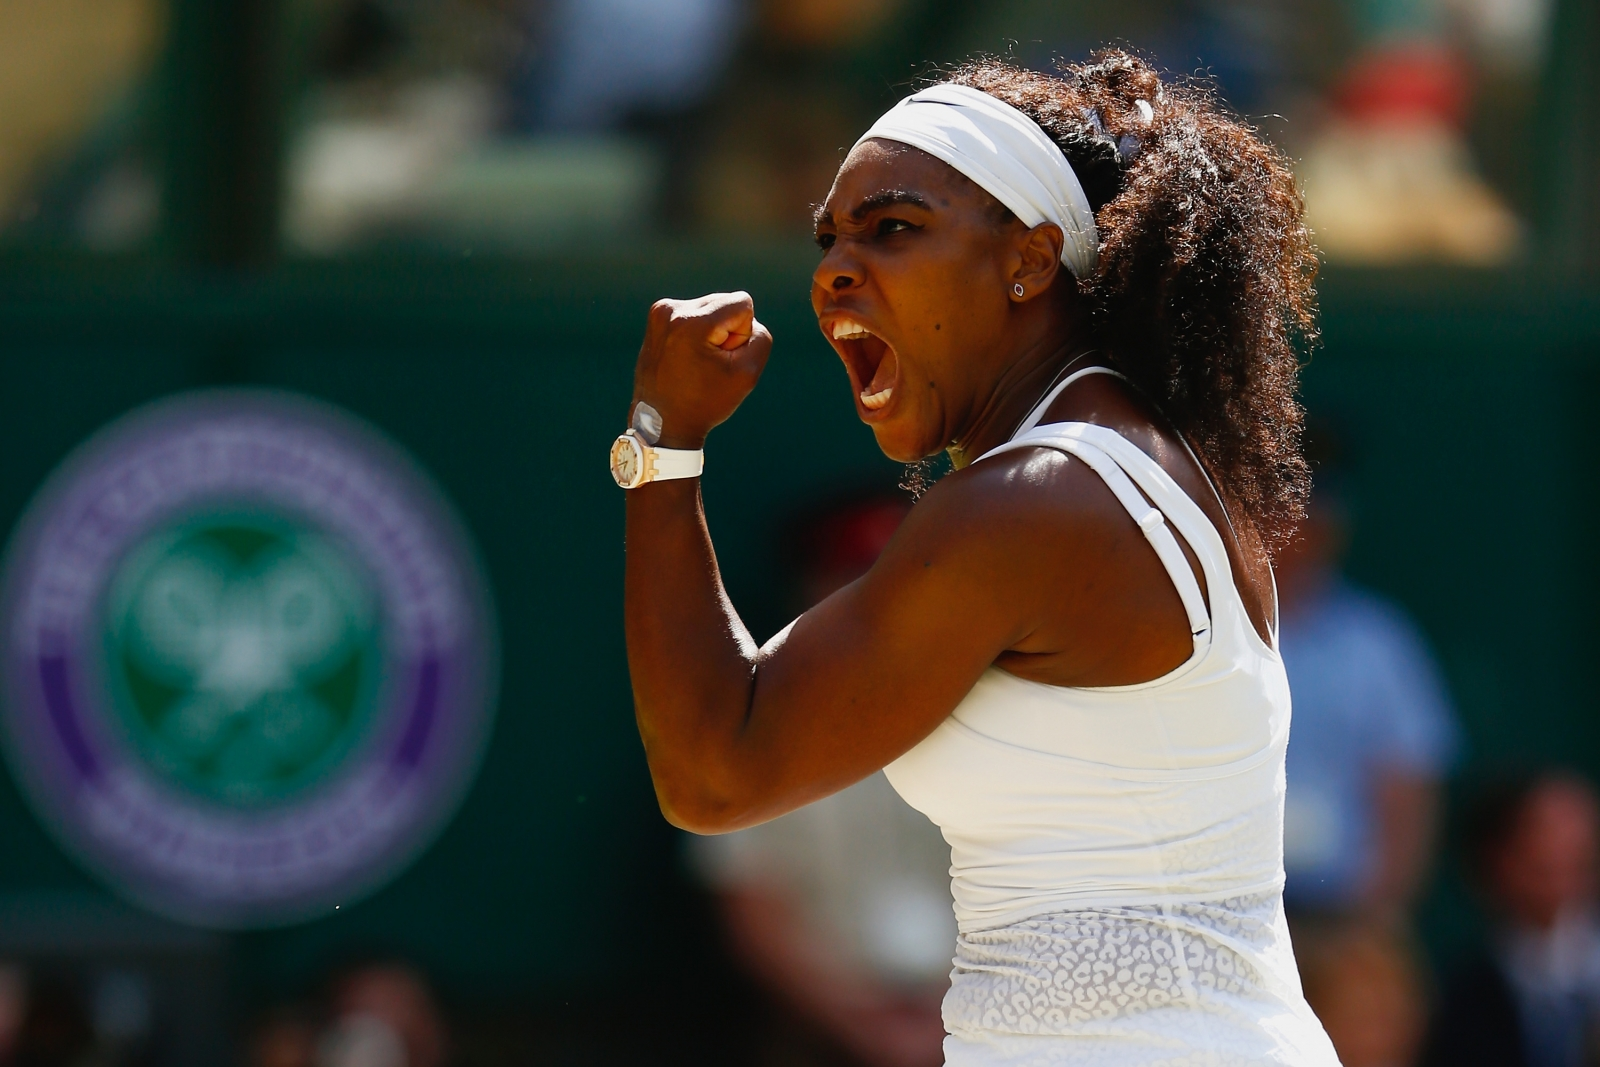 media sexualisation and female tennis essay Gender & advertising group essay and questions february 24, 2016 kelcie compared to men, women are overwhelmingly sexualized media, advertising in particular, creates unrealistic images and stereotypes about people.